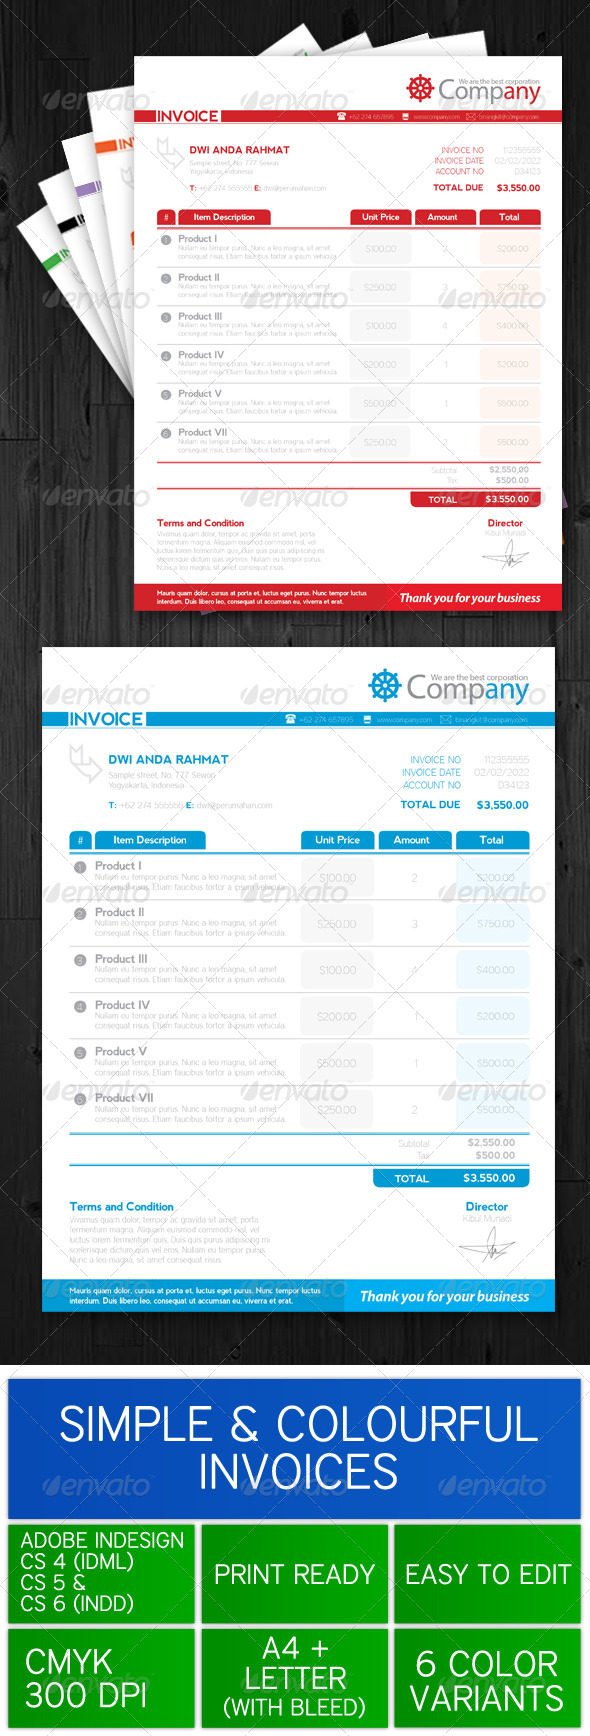 GraphicRiver Simple & Colourful Invoice Template 3491920